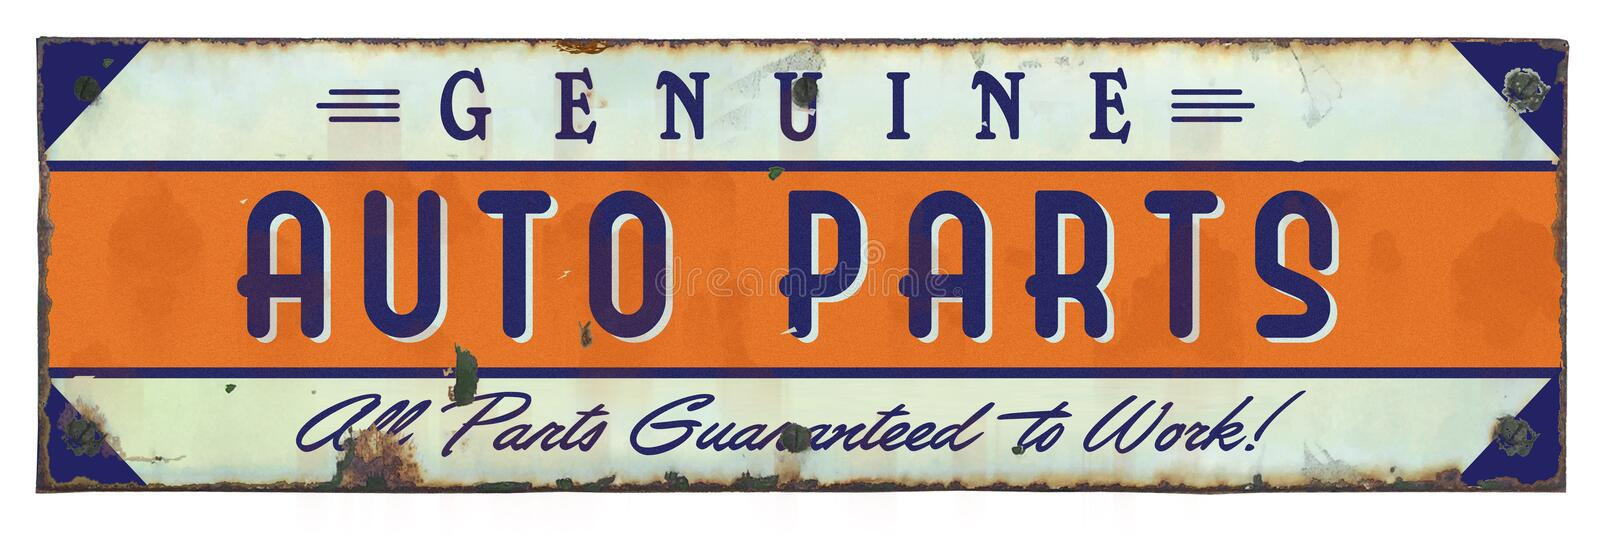 Genuine Auto Parts Sign Grunge Vintage stock photo